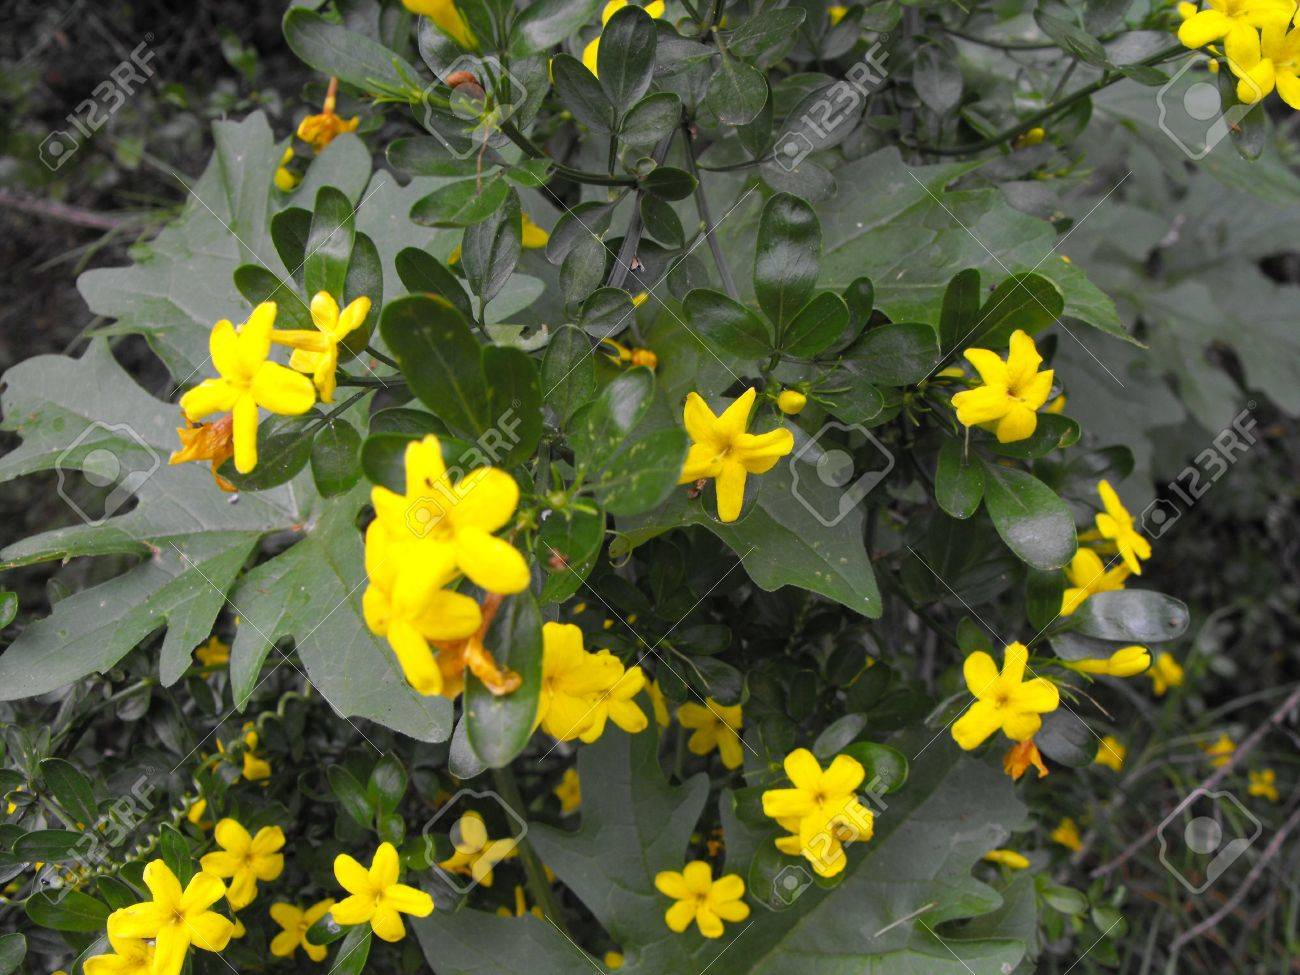 Mediterranean Shrub With Beautiful Yellow Flowers Stock Photo